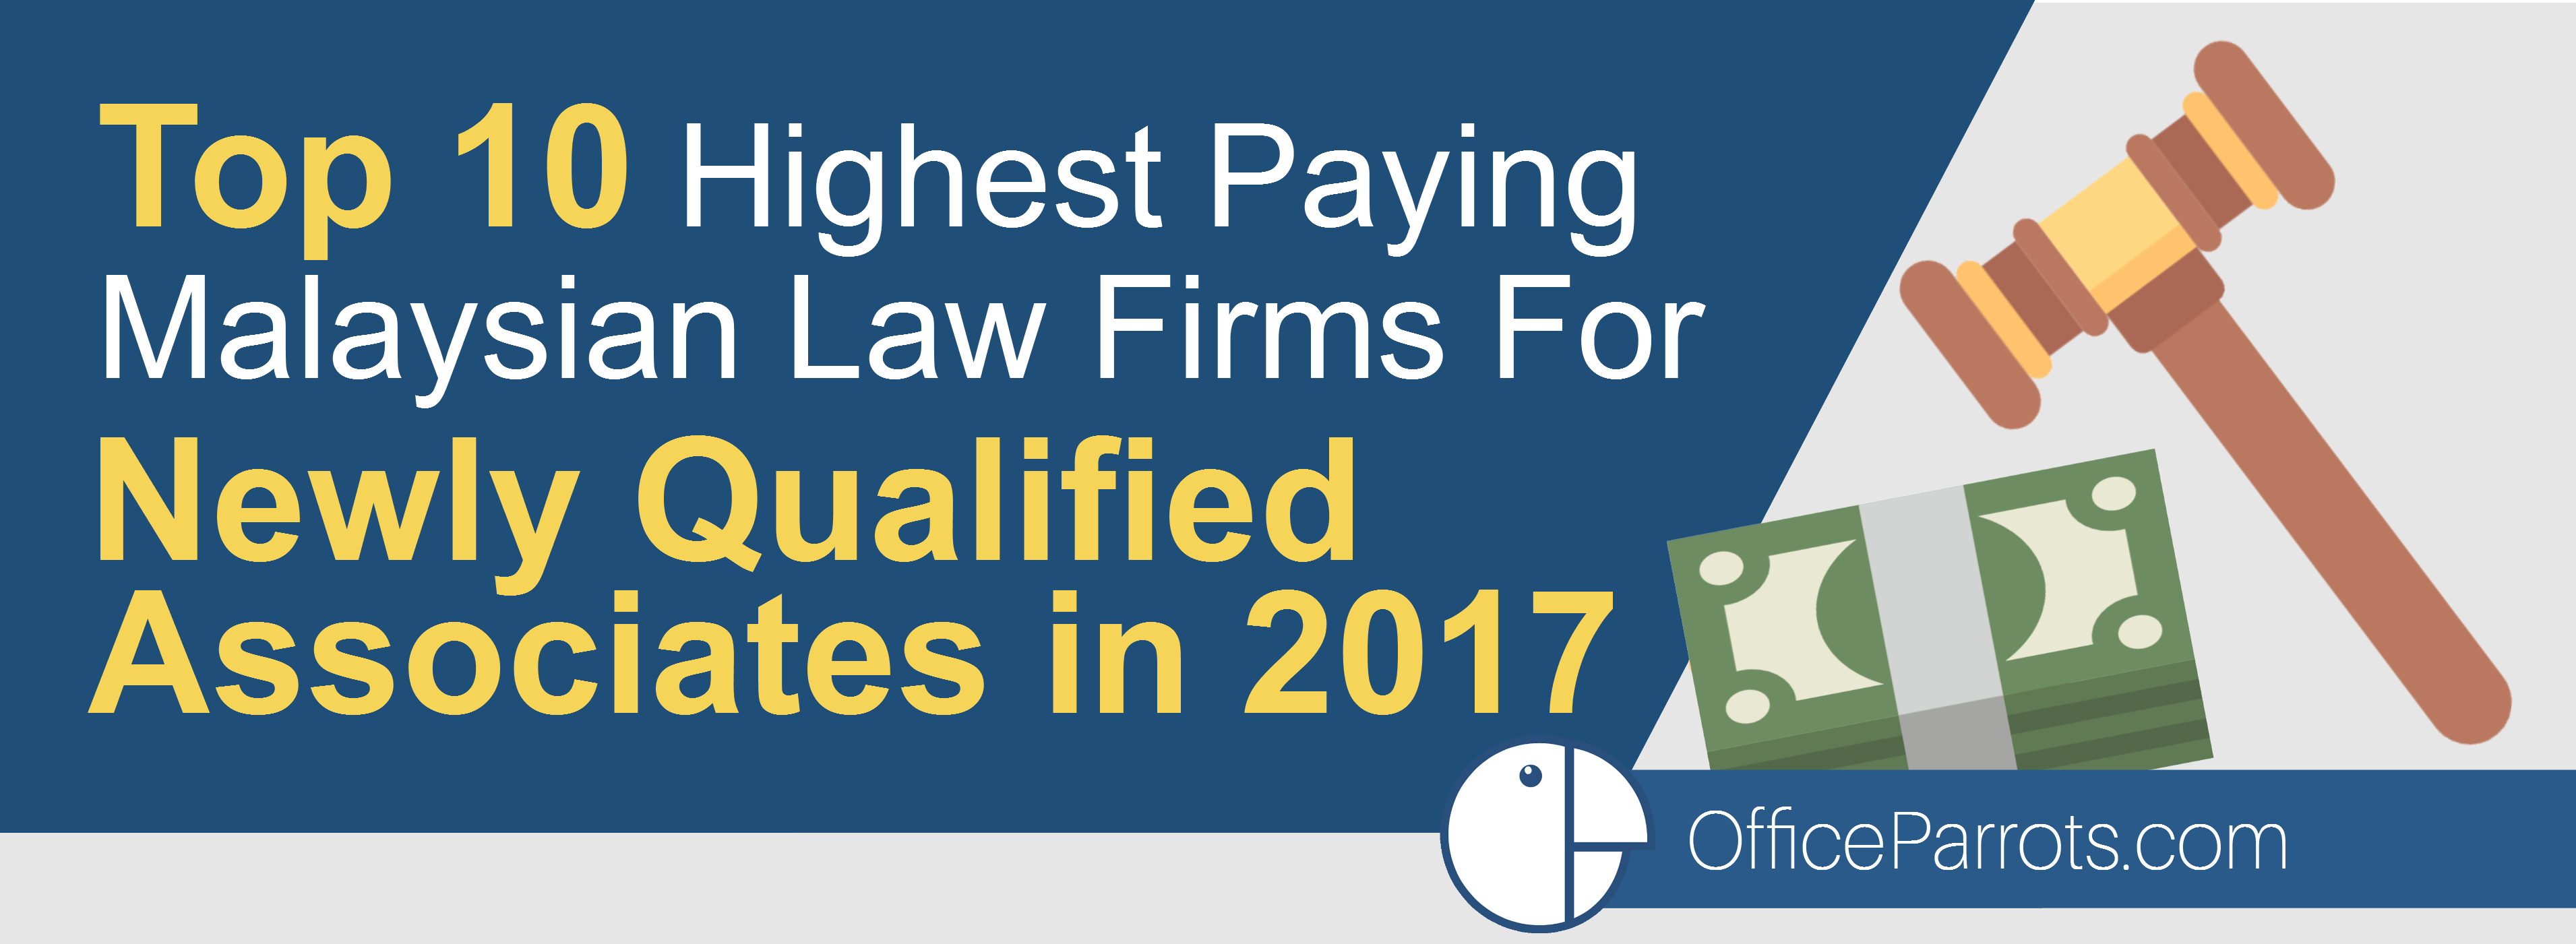 Top 10 Highest Paying Malaysian Law Firms For Newly